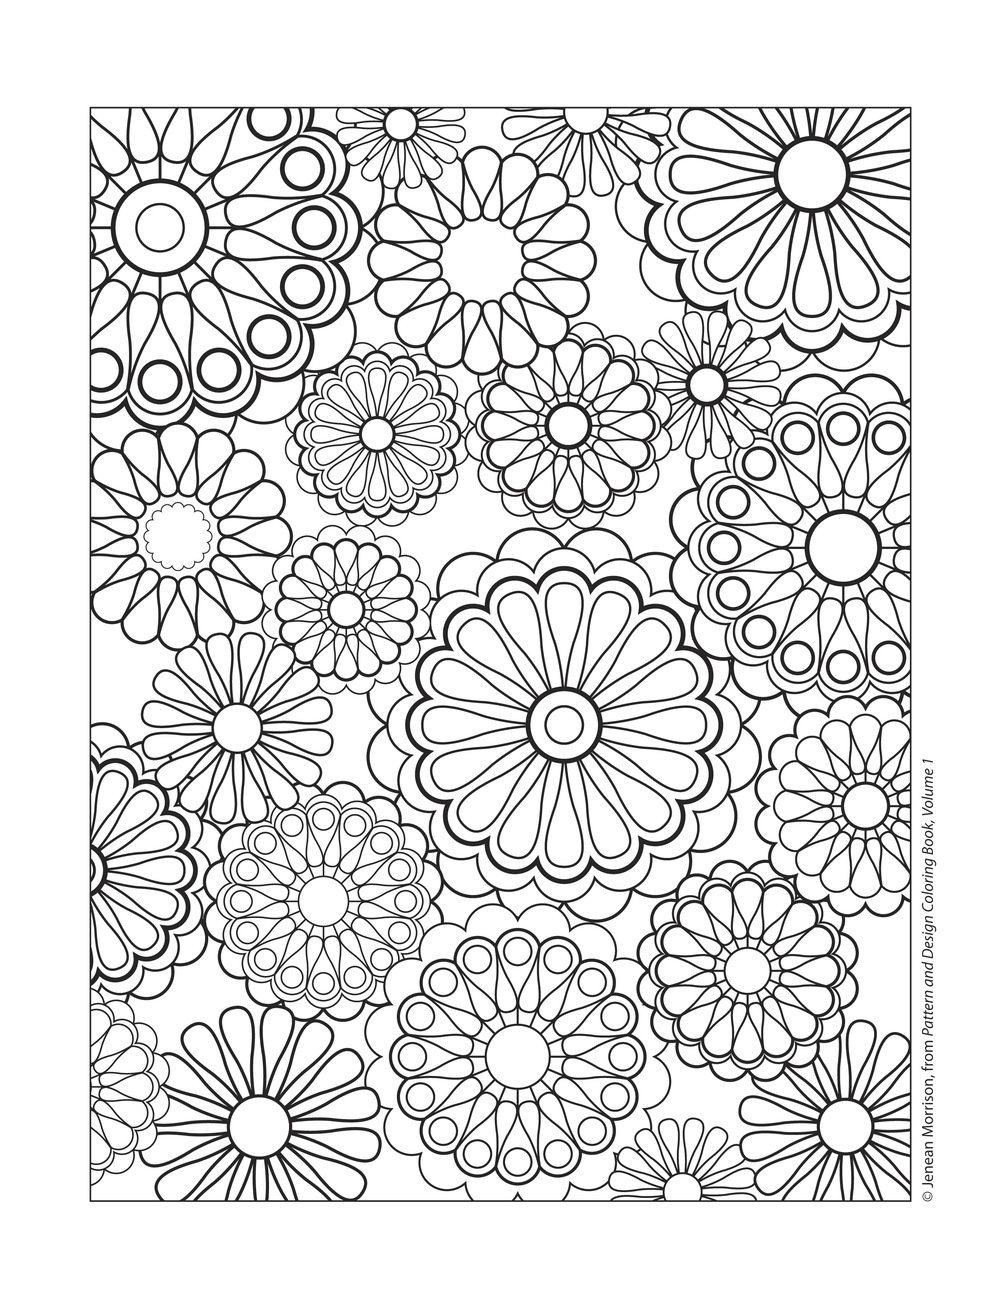 flowers in vase art of printable cool vases flower vase coloring page pages flowers in a within adinserter block1 click on the images above to save it to your computer